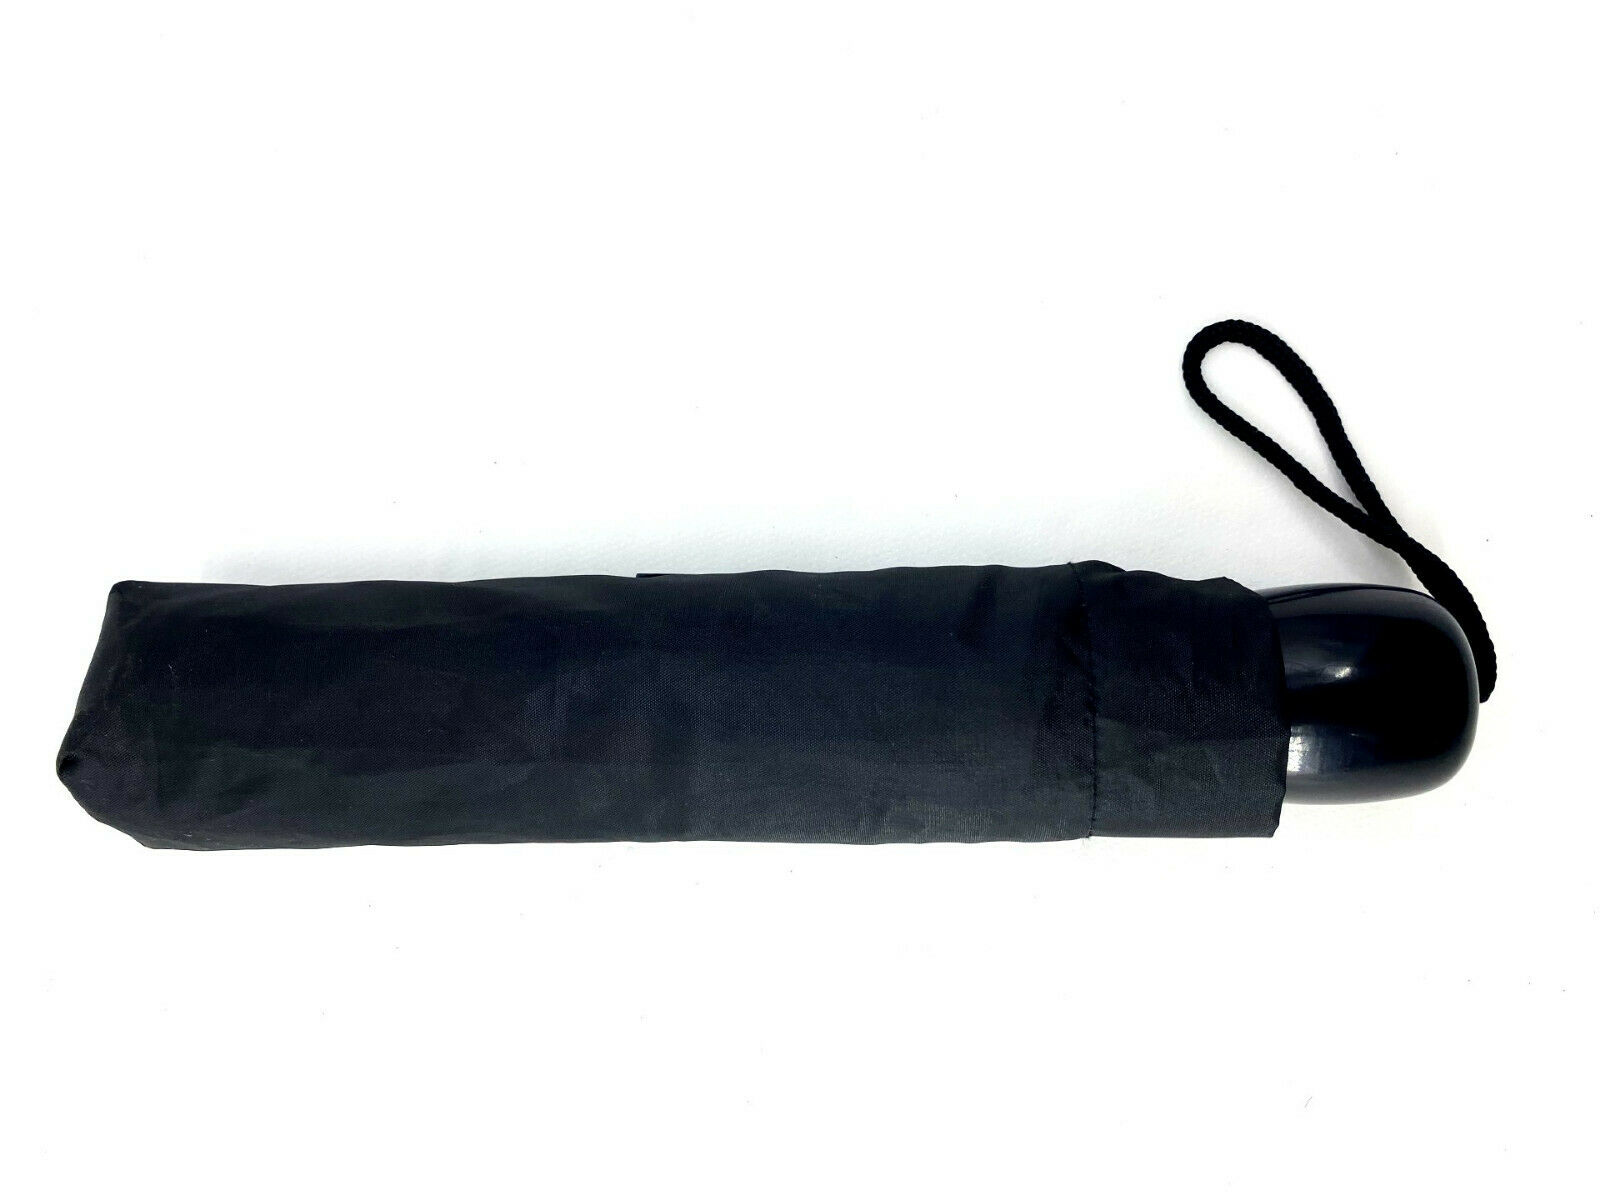 Pack of 2 mini Umbrella Telescopic Portable Black and many colours to choose